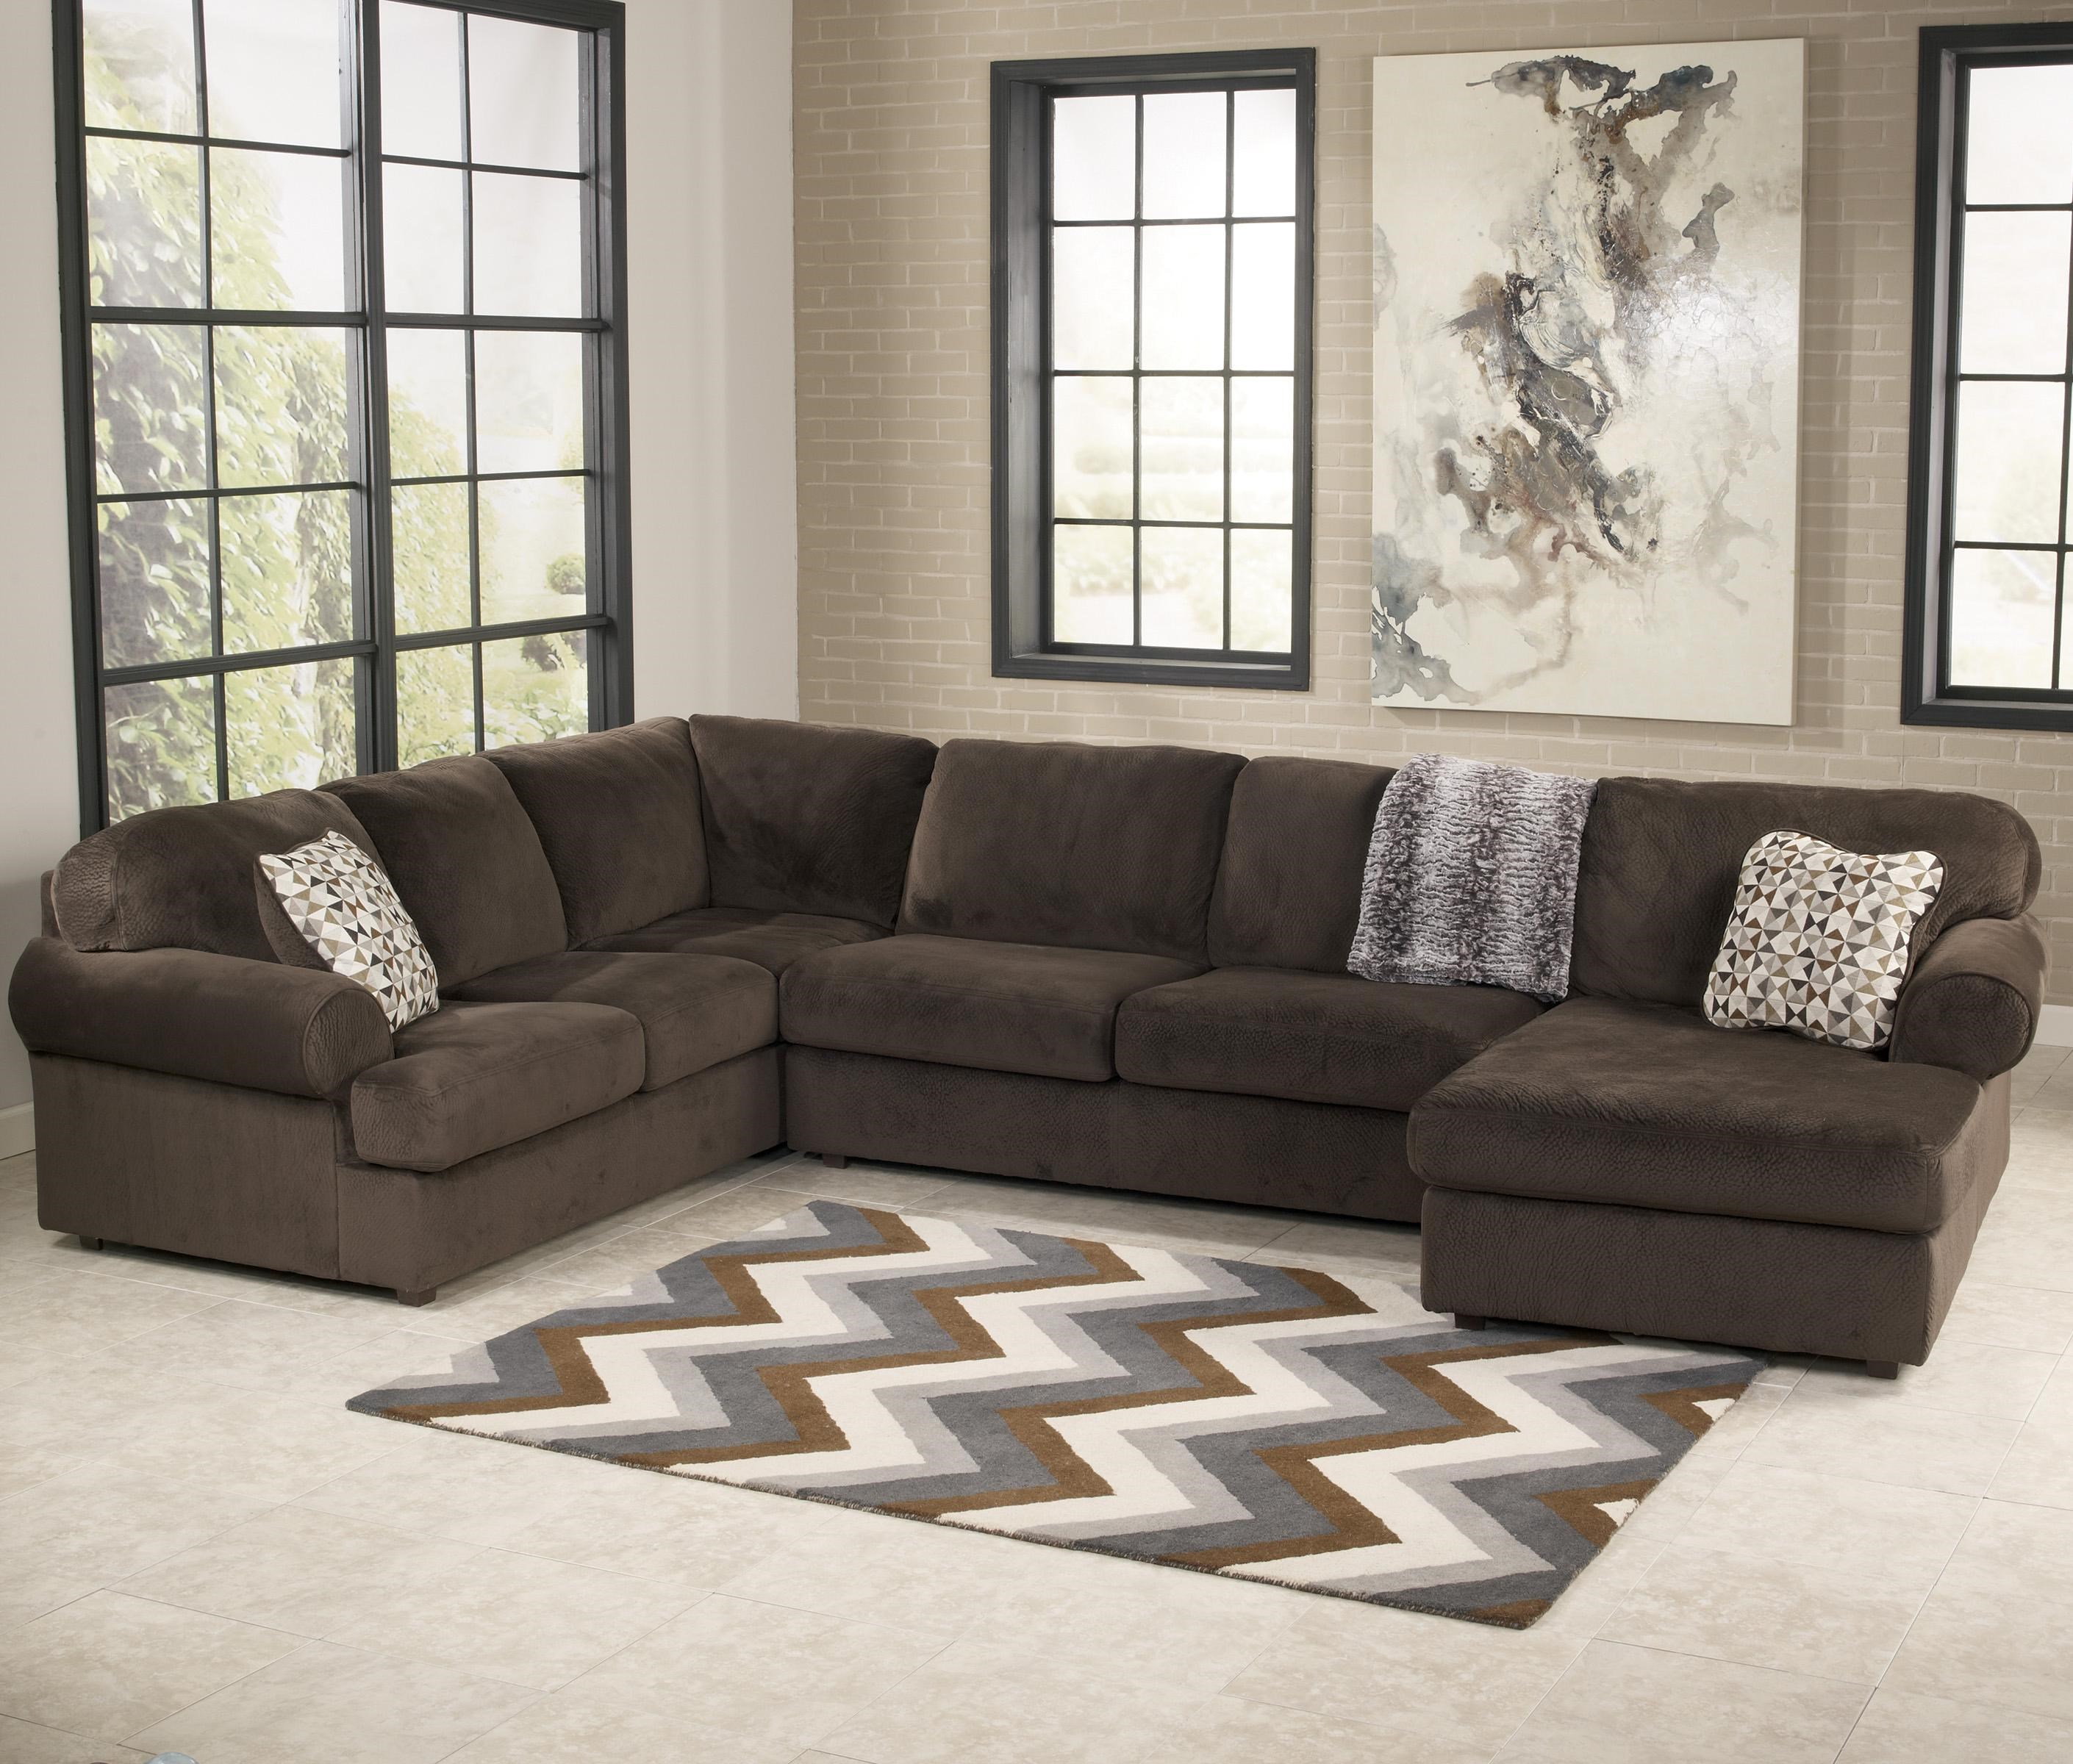 Couch Sectional Path Included Ashley Furniture Vista Chocolate